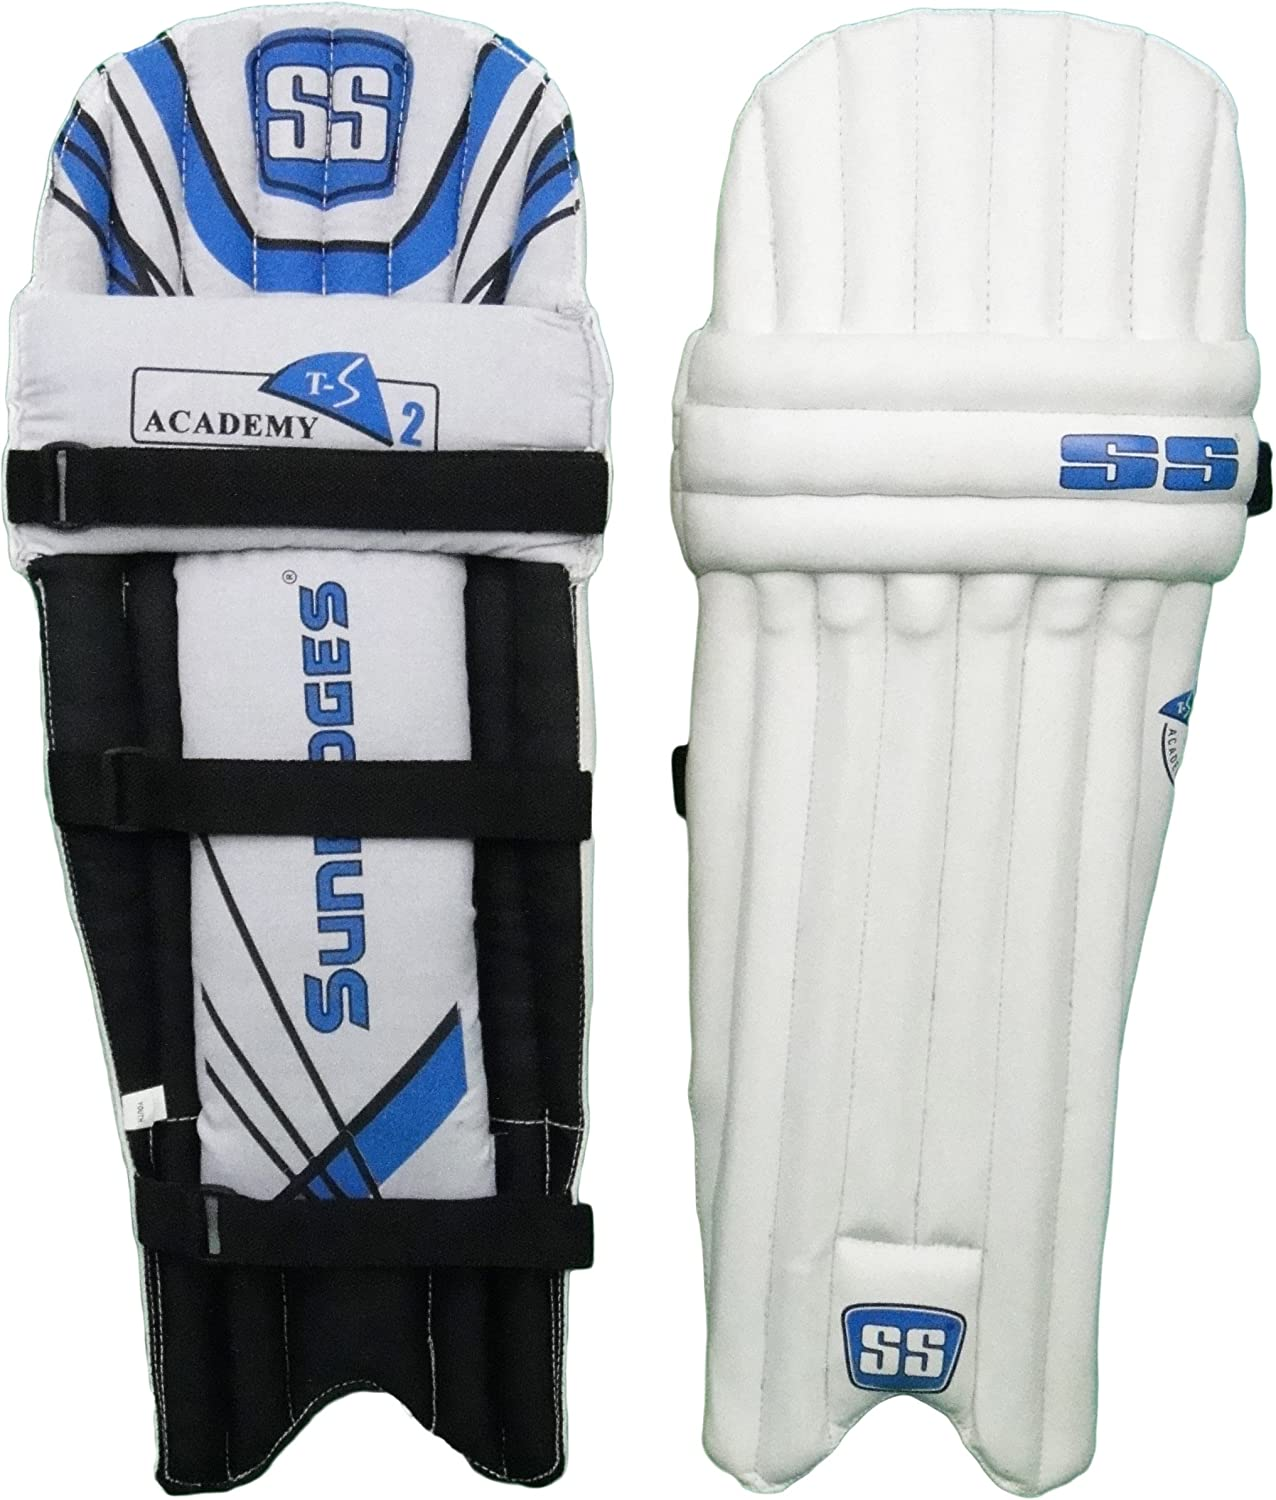 SS Academy Batting Leg-Guard